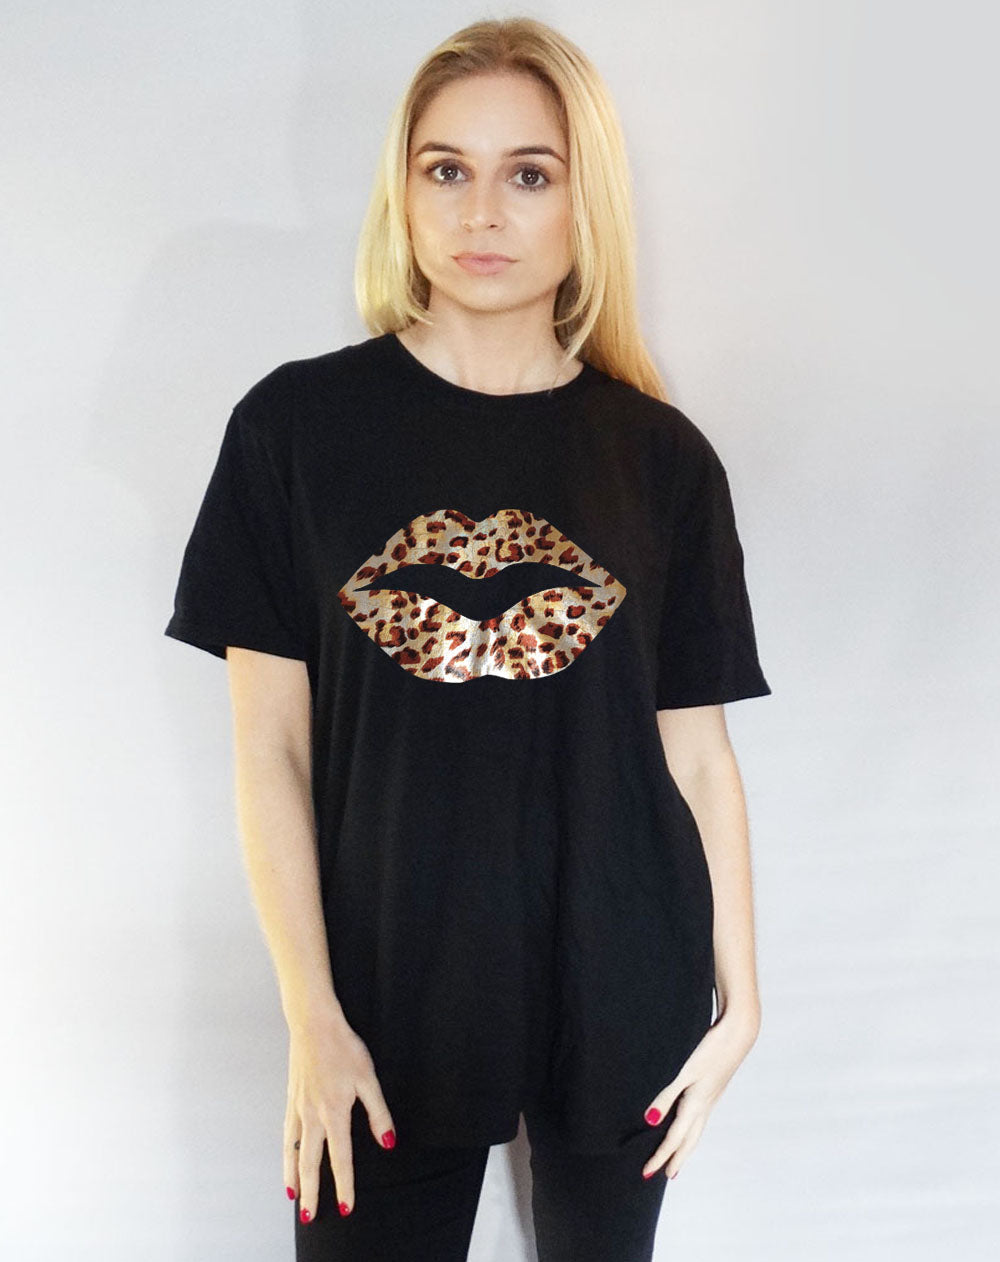 Black Tshirt with Silver Holographic Leopard Lips